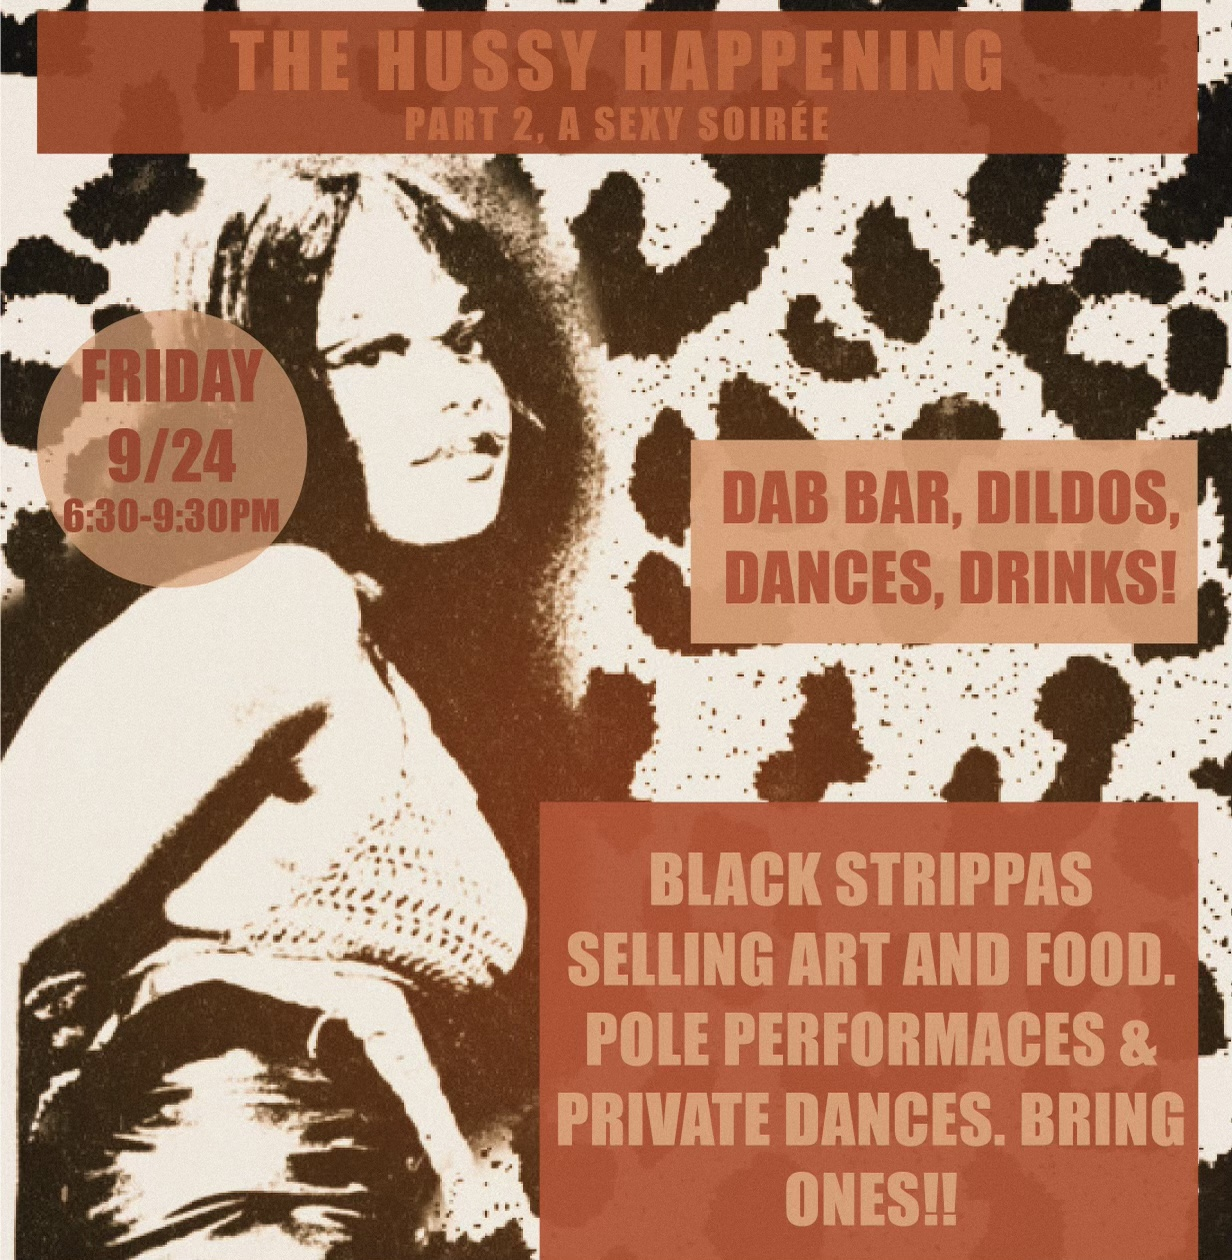 The Hussy Happening; A Sexy Soirée